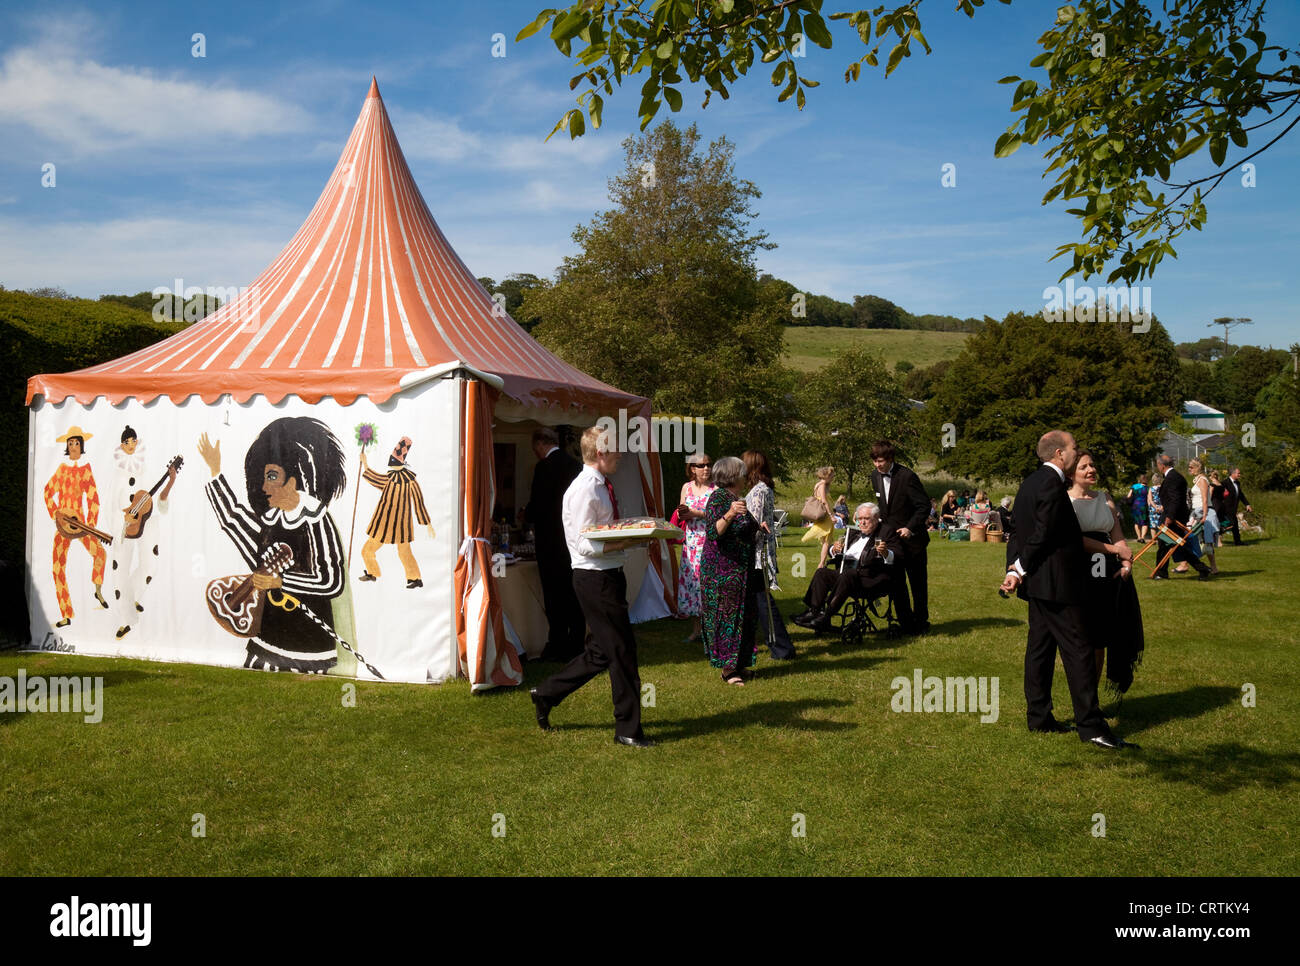 Ch&agne bar tent in the gardens Glyndebourne Opera Festival Lewes Sussex UK & Champagne bar tent in the gardens Glyndebourne Opera Festival ...